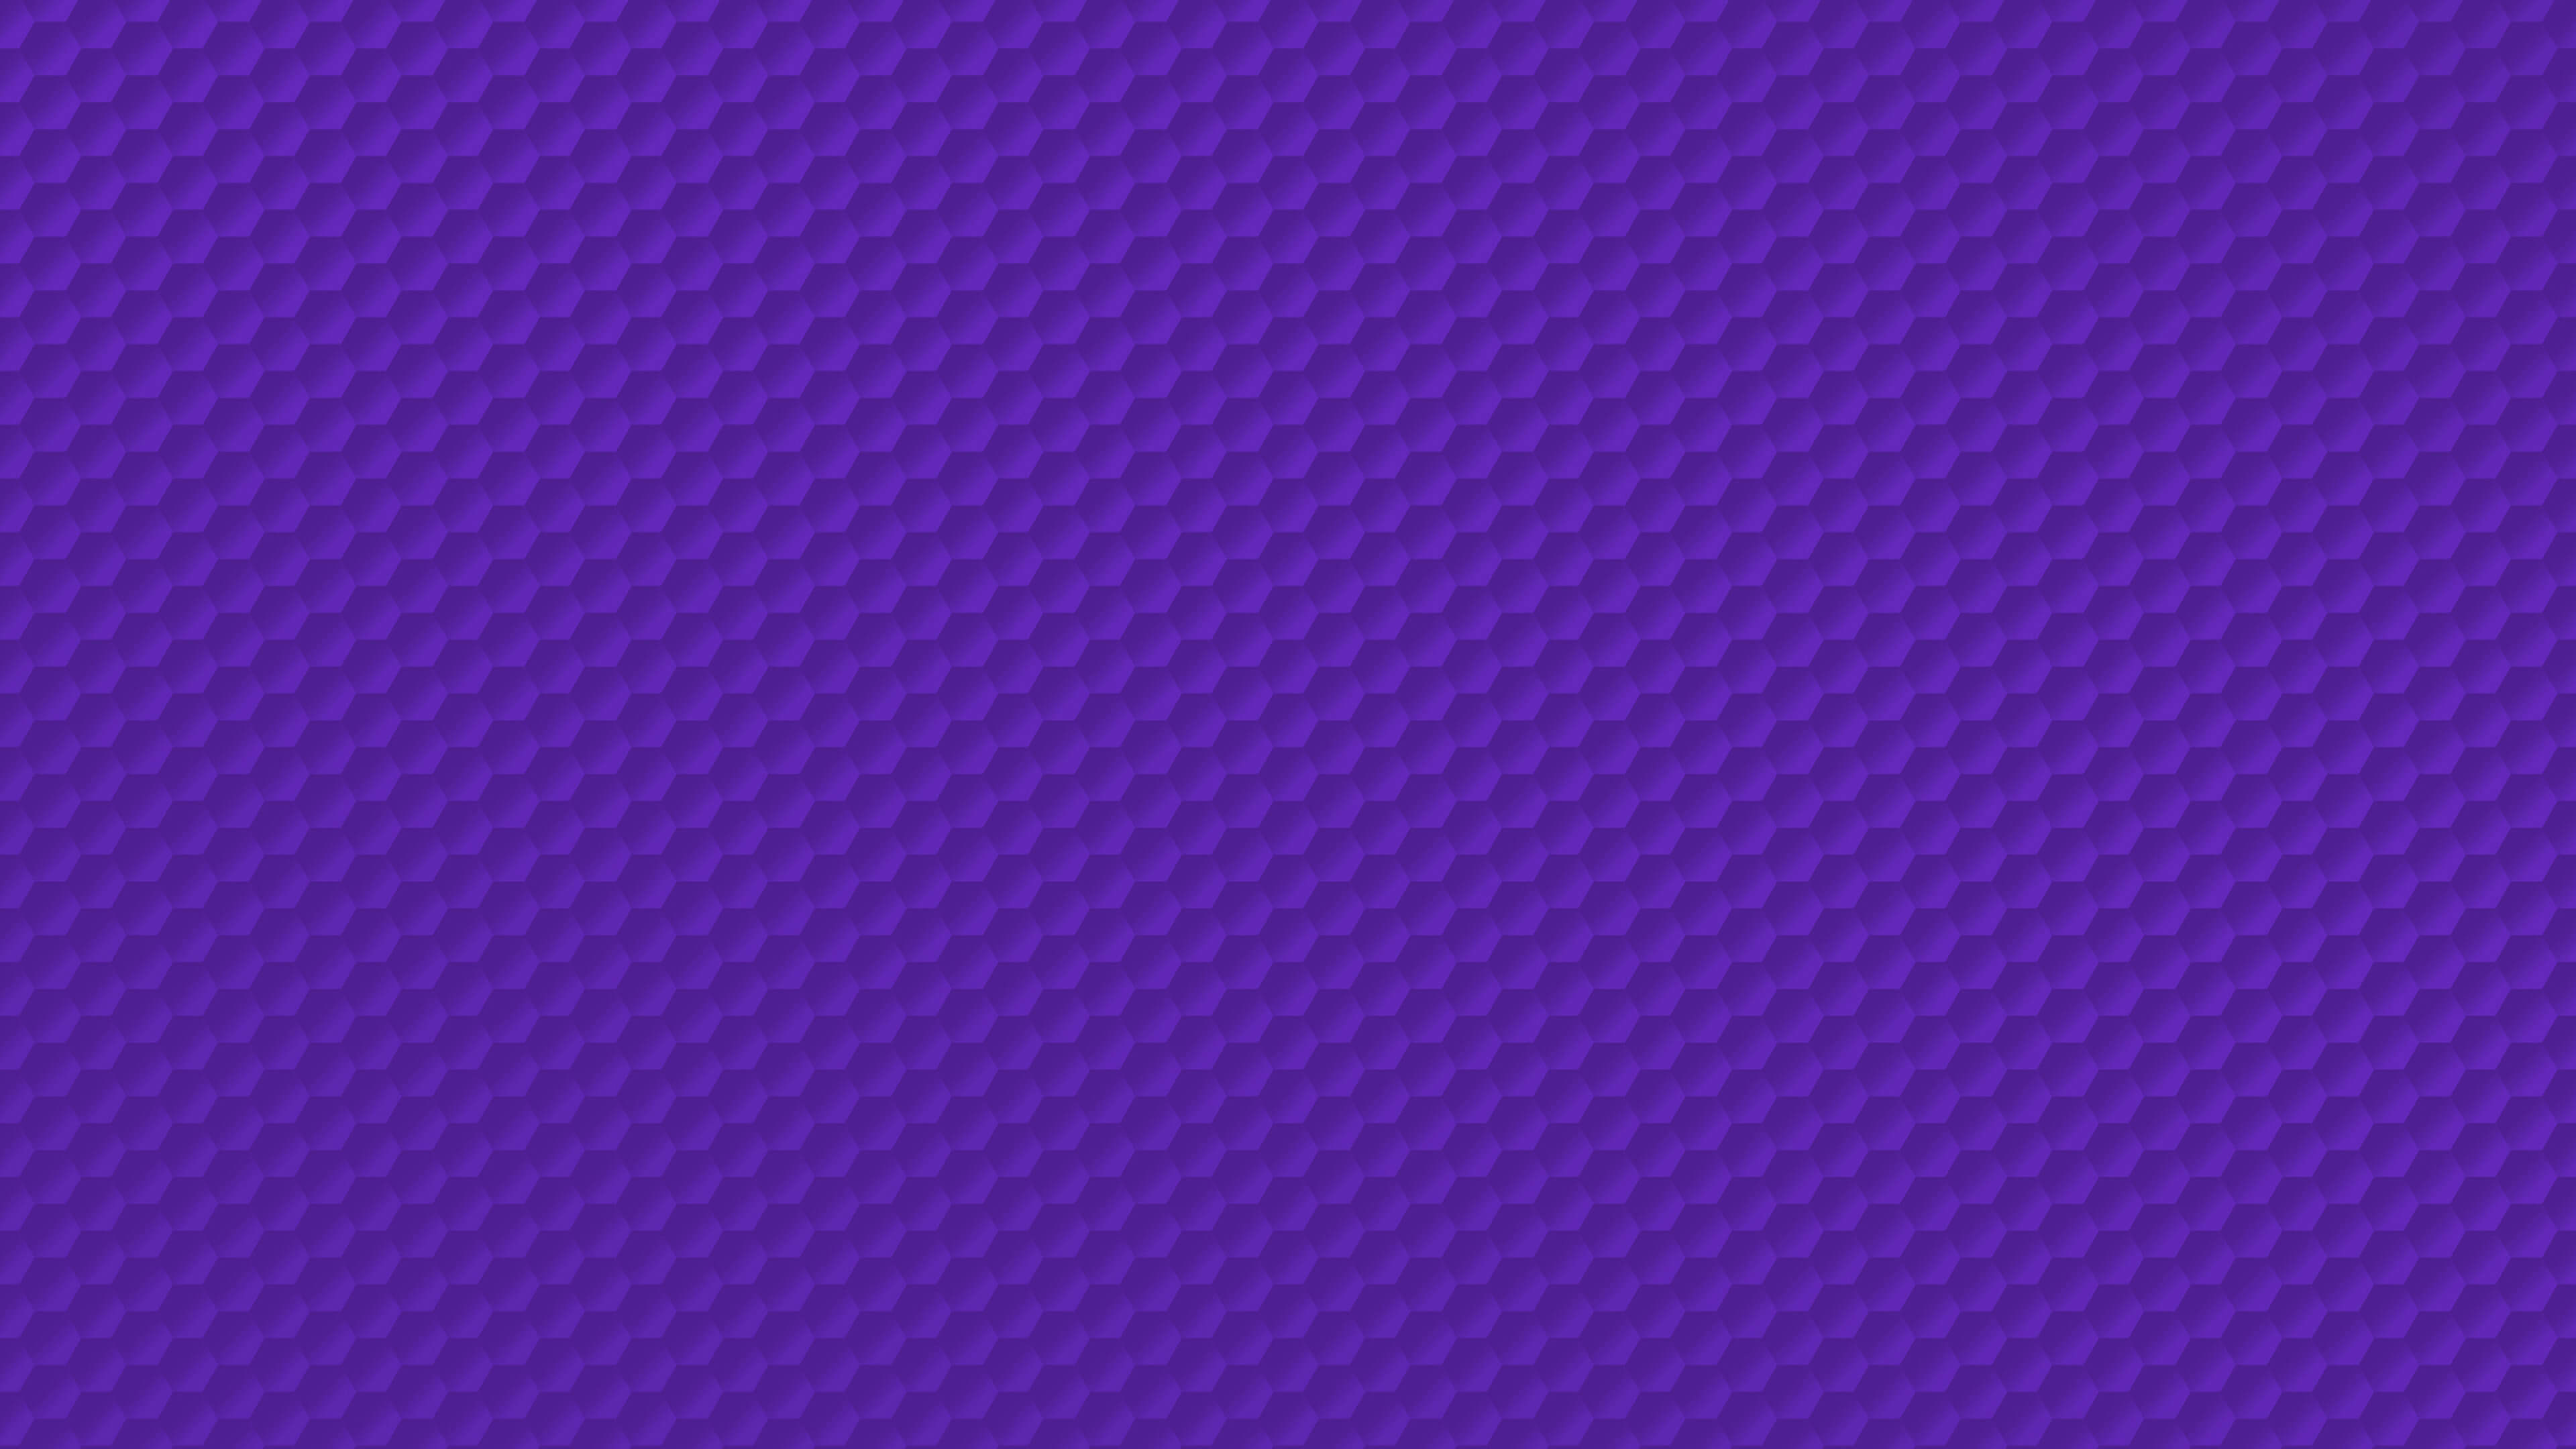 4K Purple Wallpaper Background